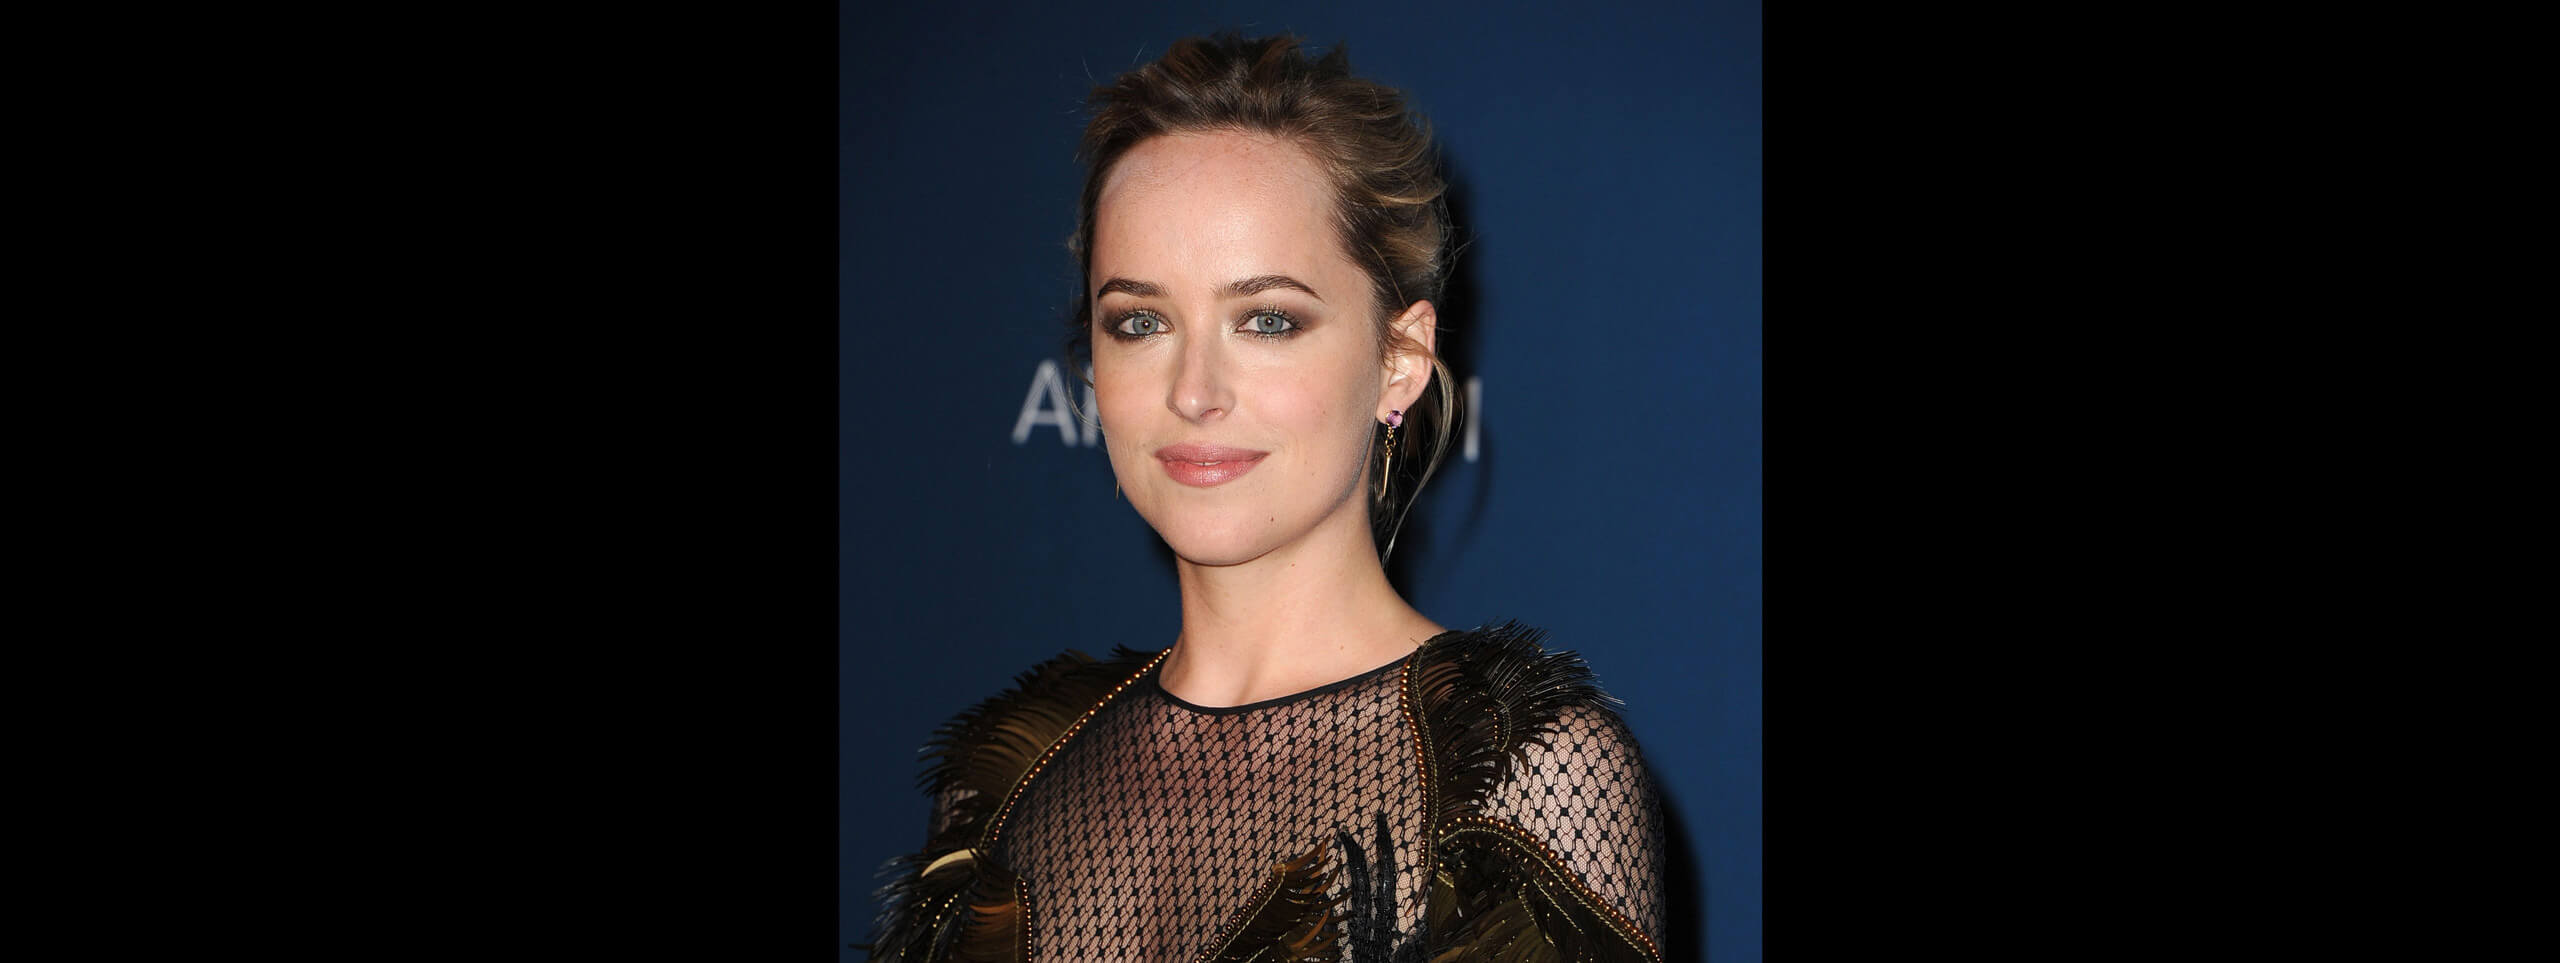 hairstyle-dakota-johnson